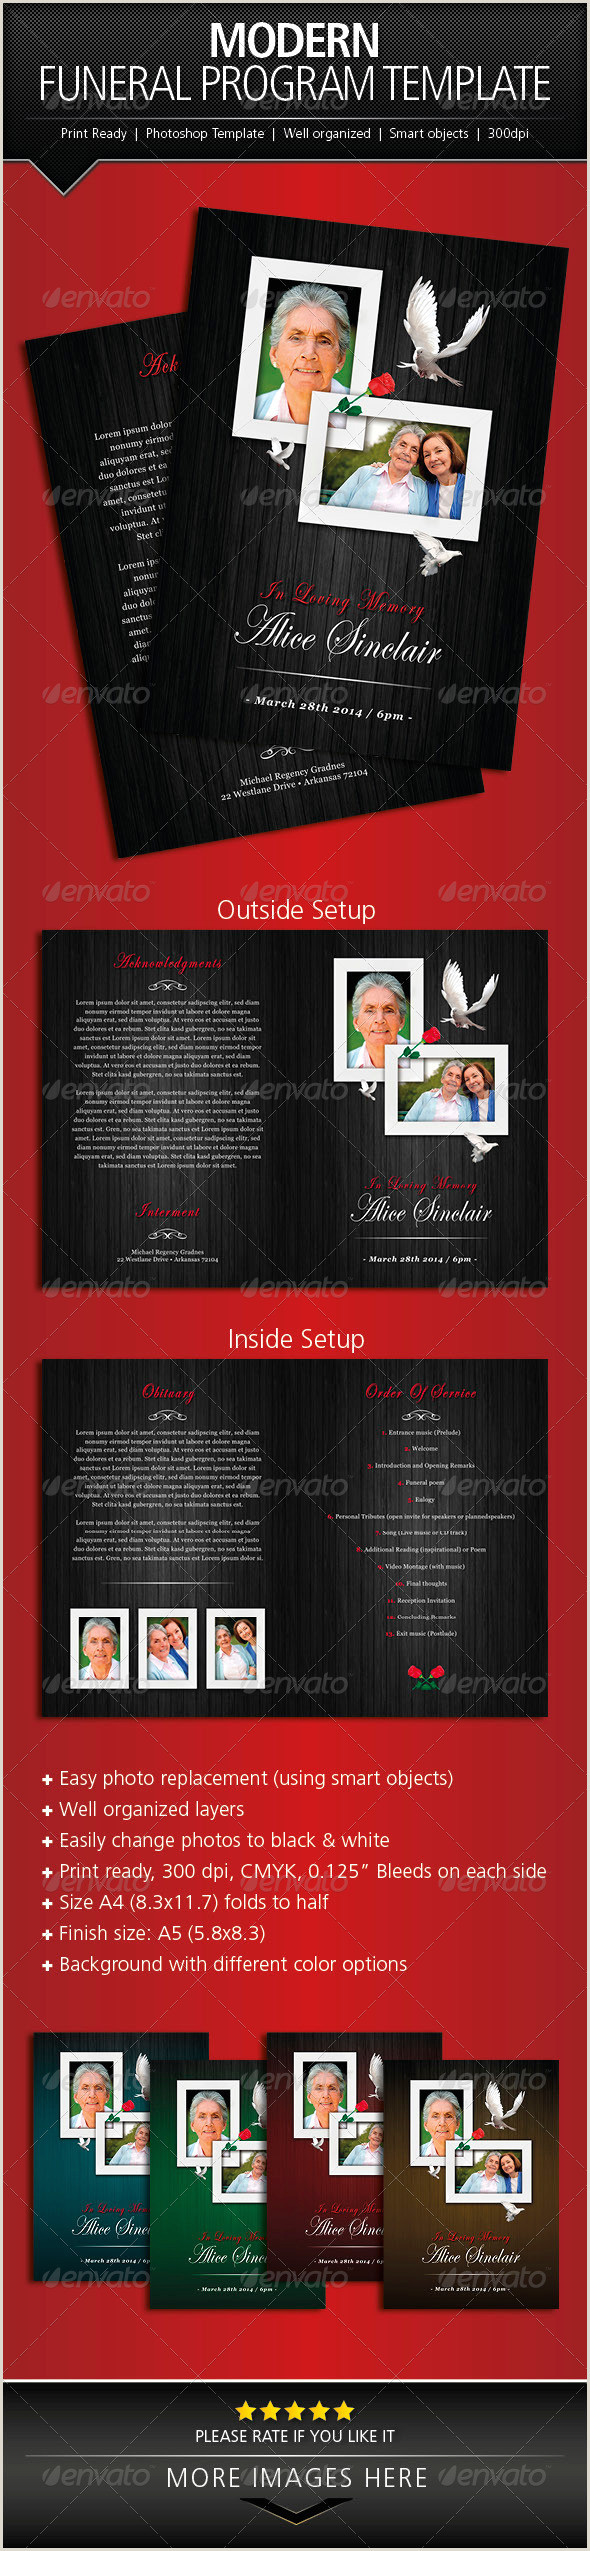 Funeral Programs Template Free Graphics Designs & Templates